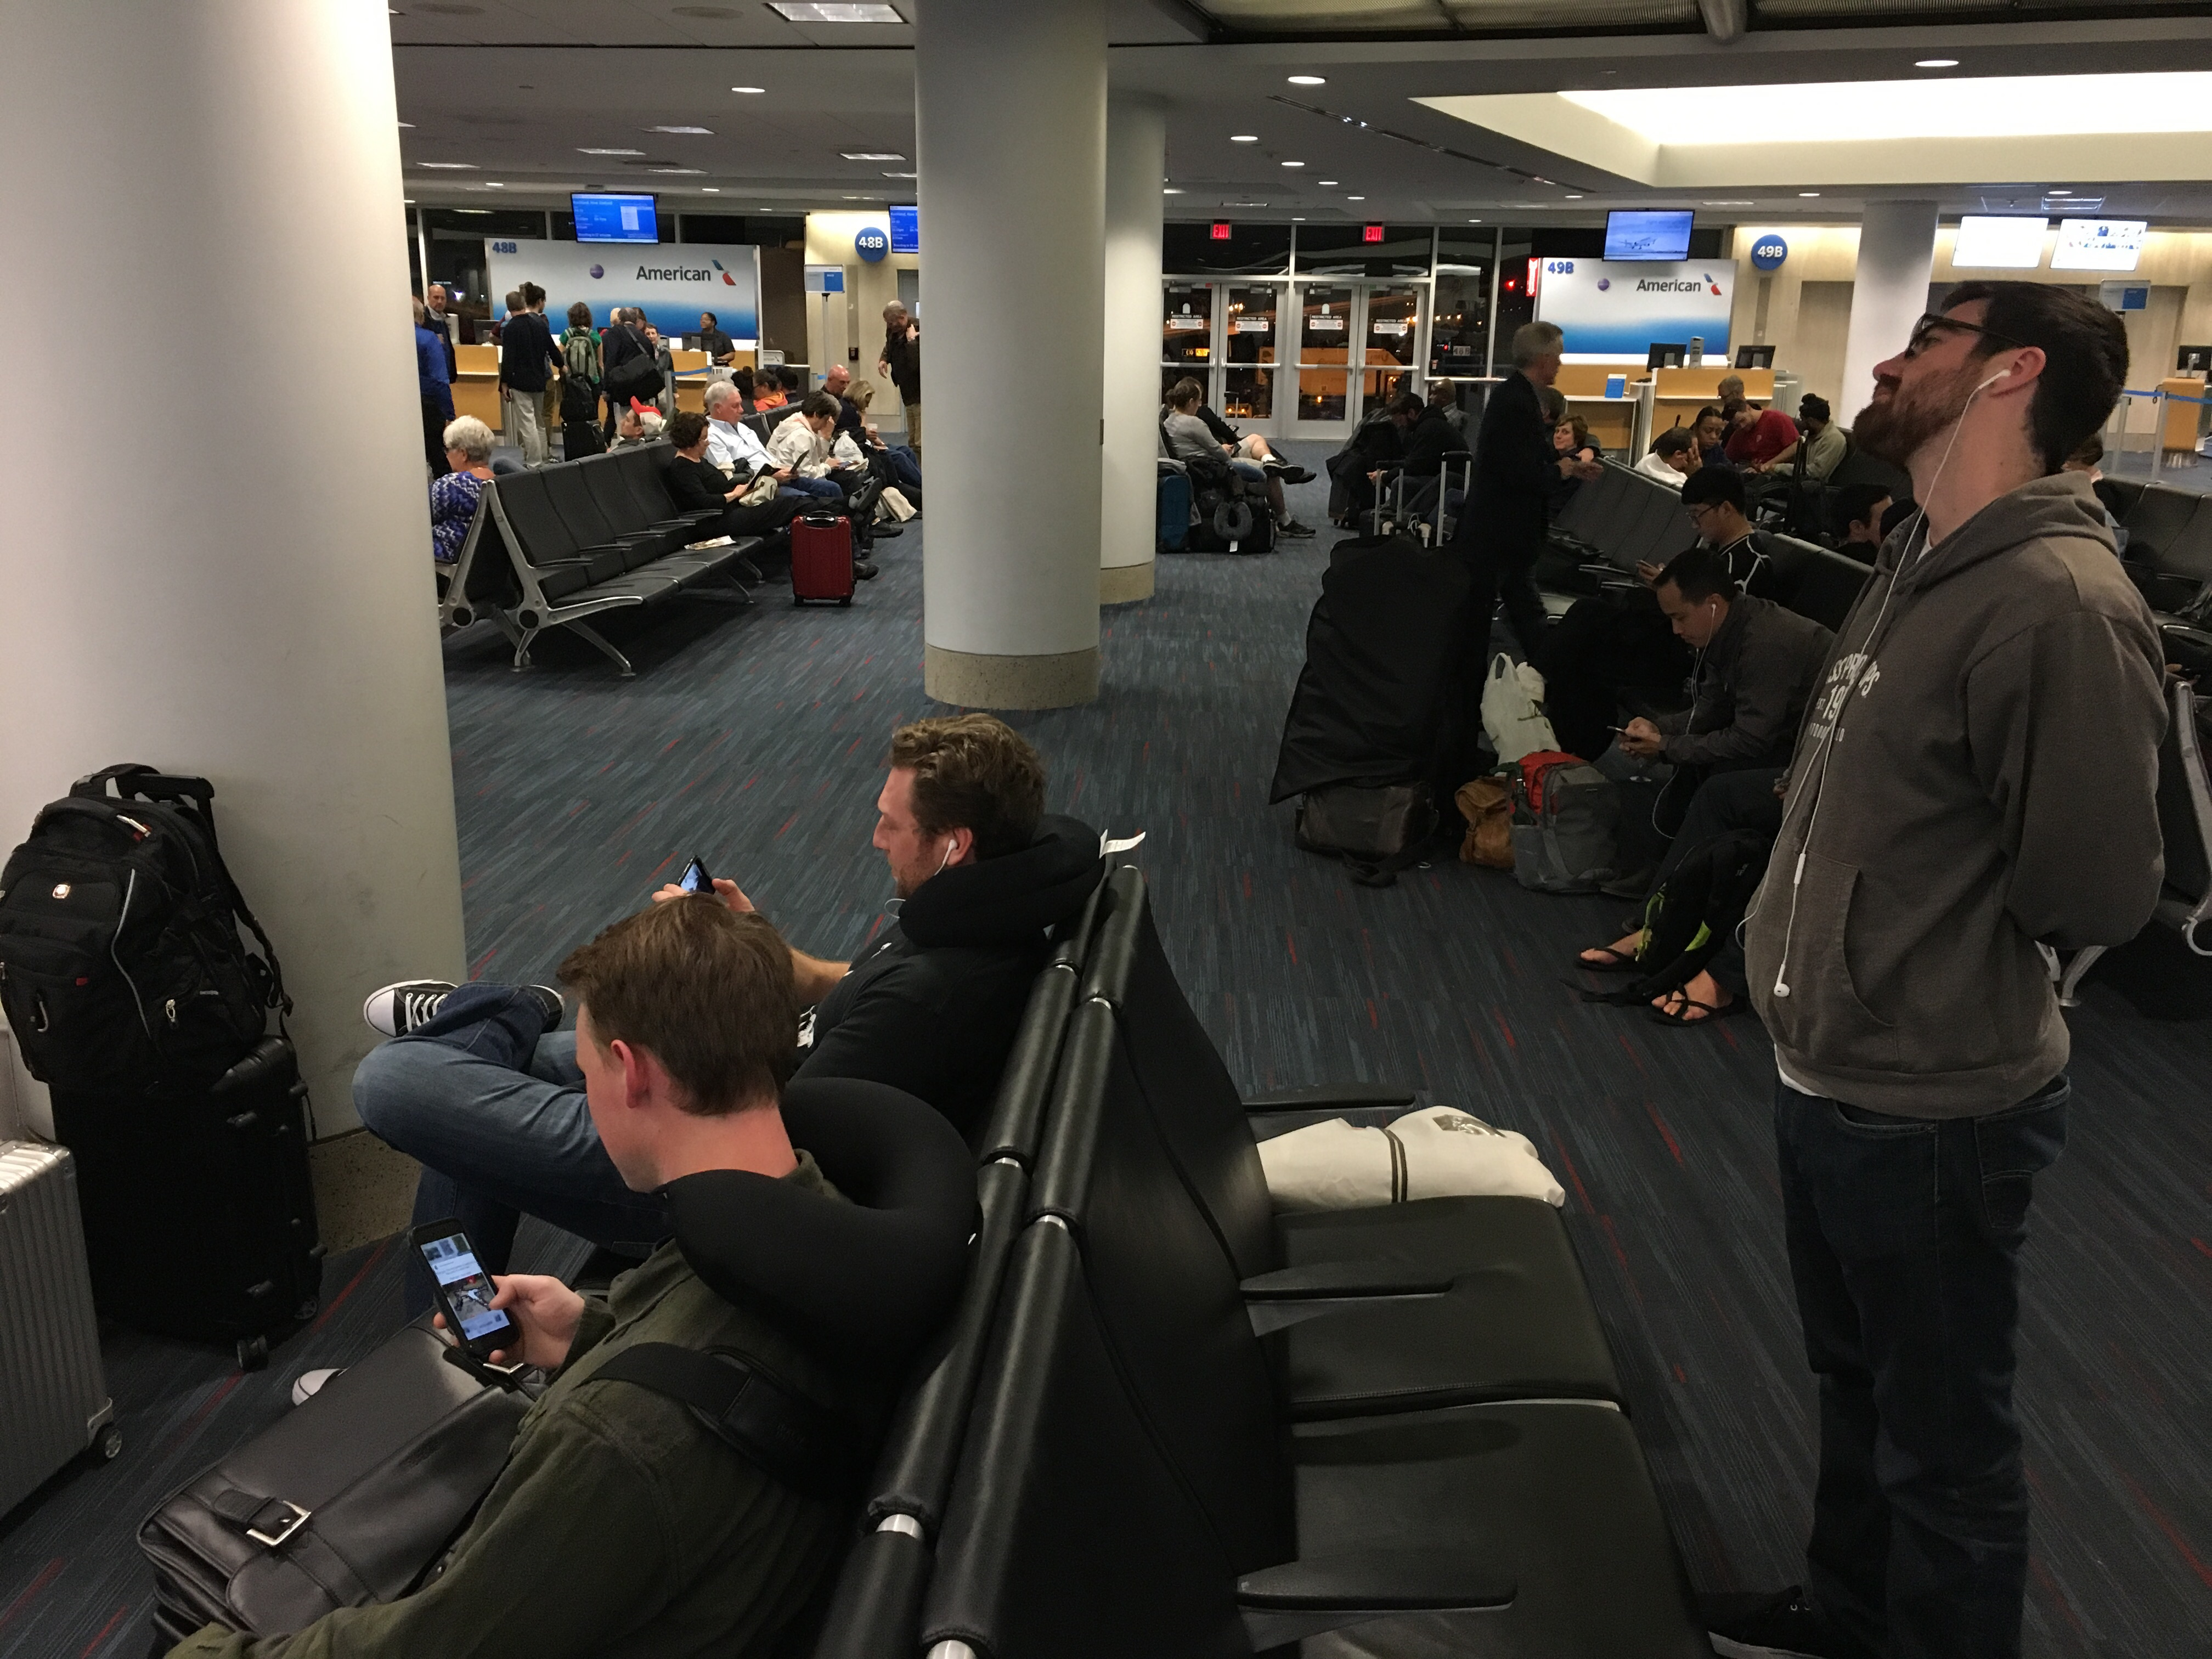 Eleven Hours in the Air - Our Journey to HIMSS17 Orlando - Paubox